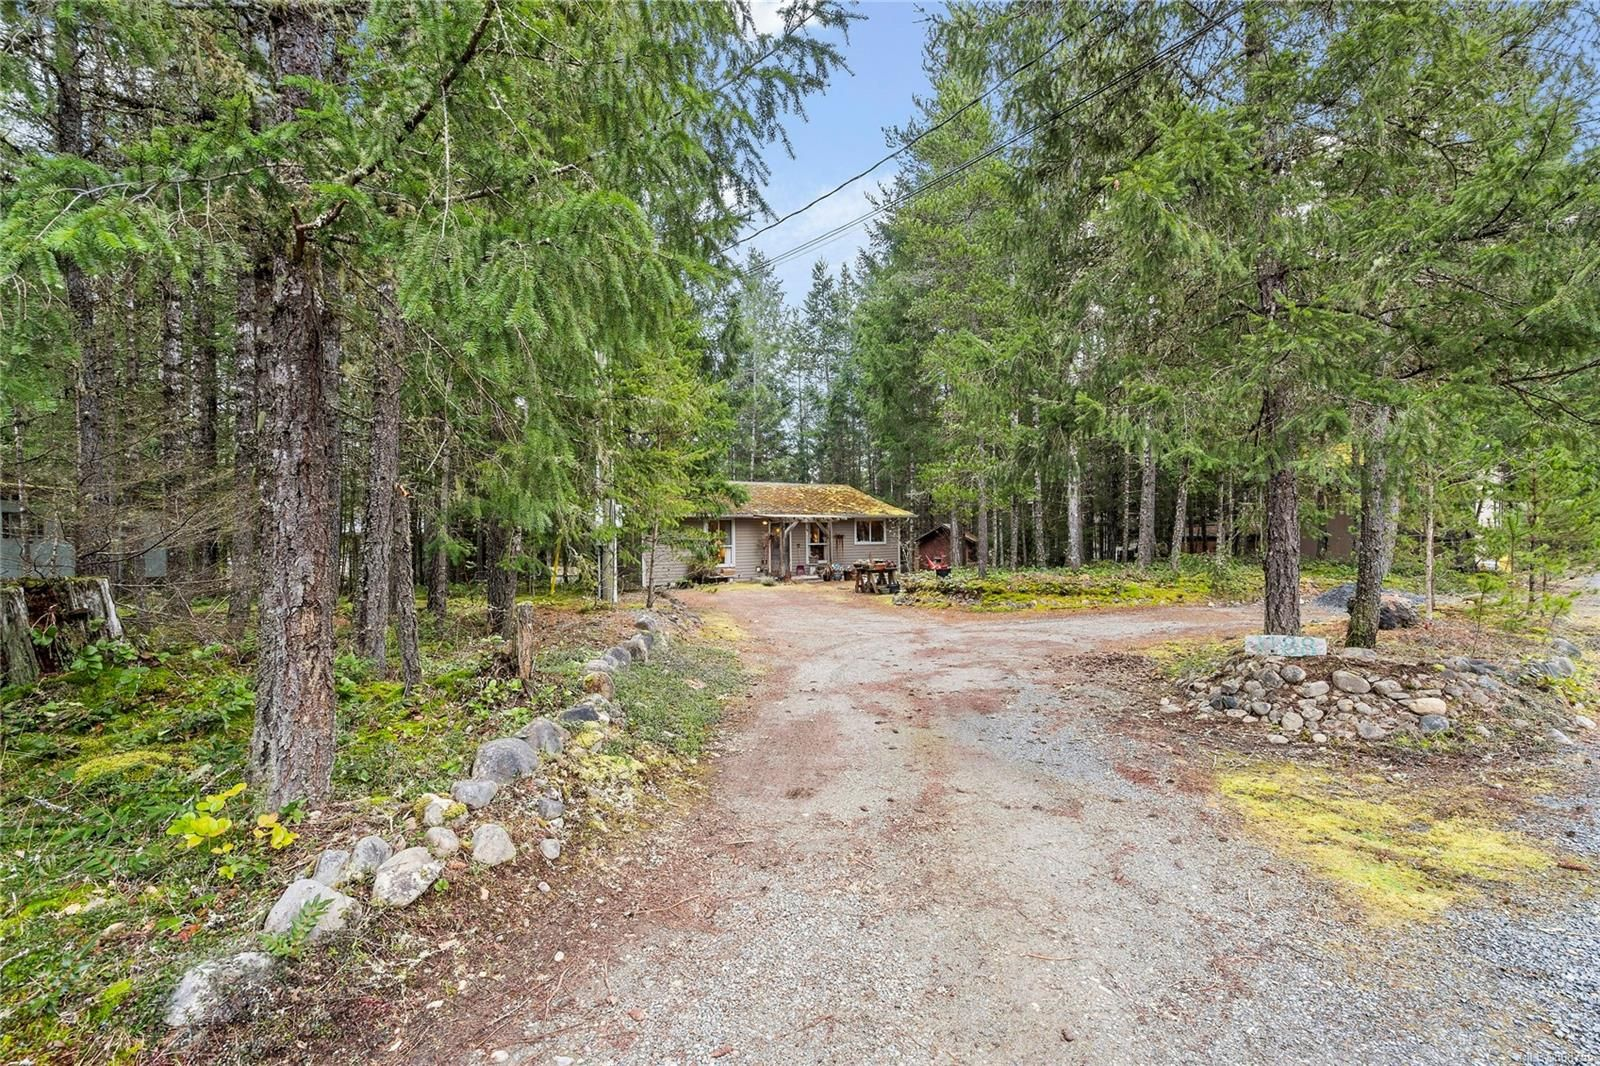 Main Photo: 1198 Stagdowne Rd in : PQ Errington/Coombs/Hilliers House for sale (Parksville/Qualicum)  : MLS®# 868755